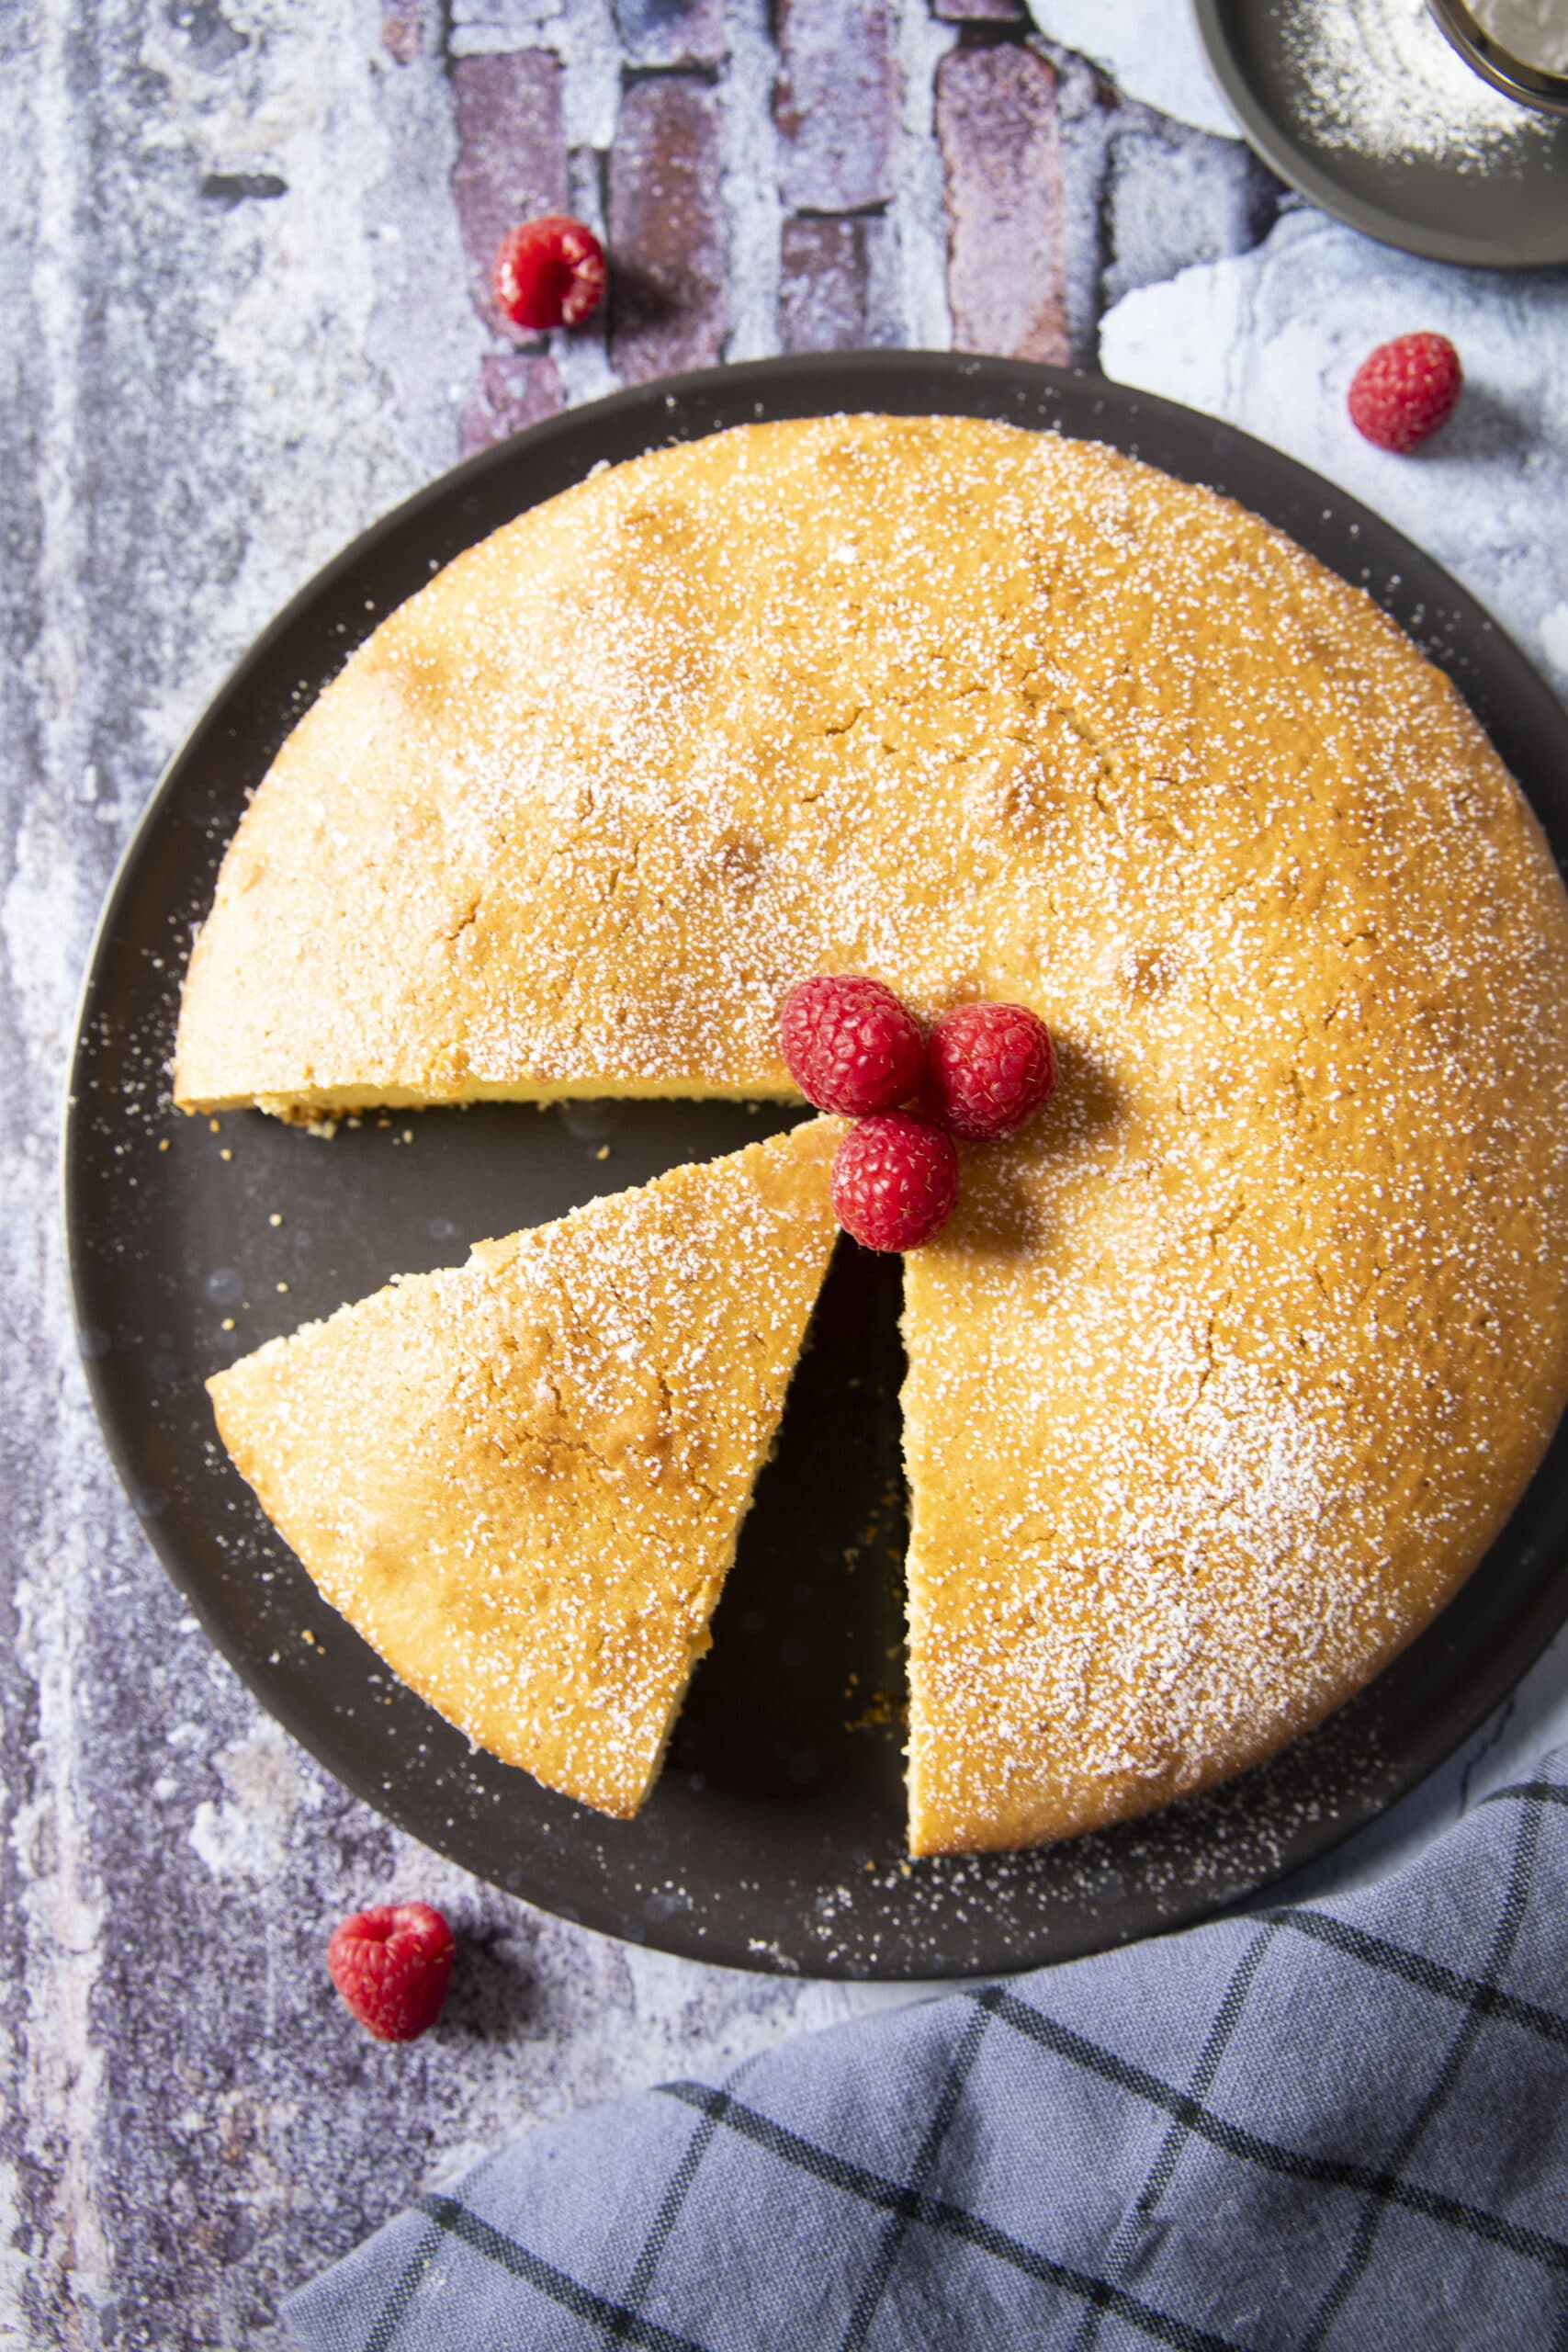 An overhead shot of a newly baked olive oil cake, with some slices already served.